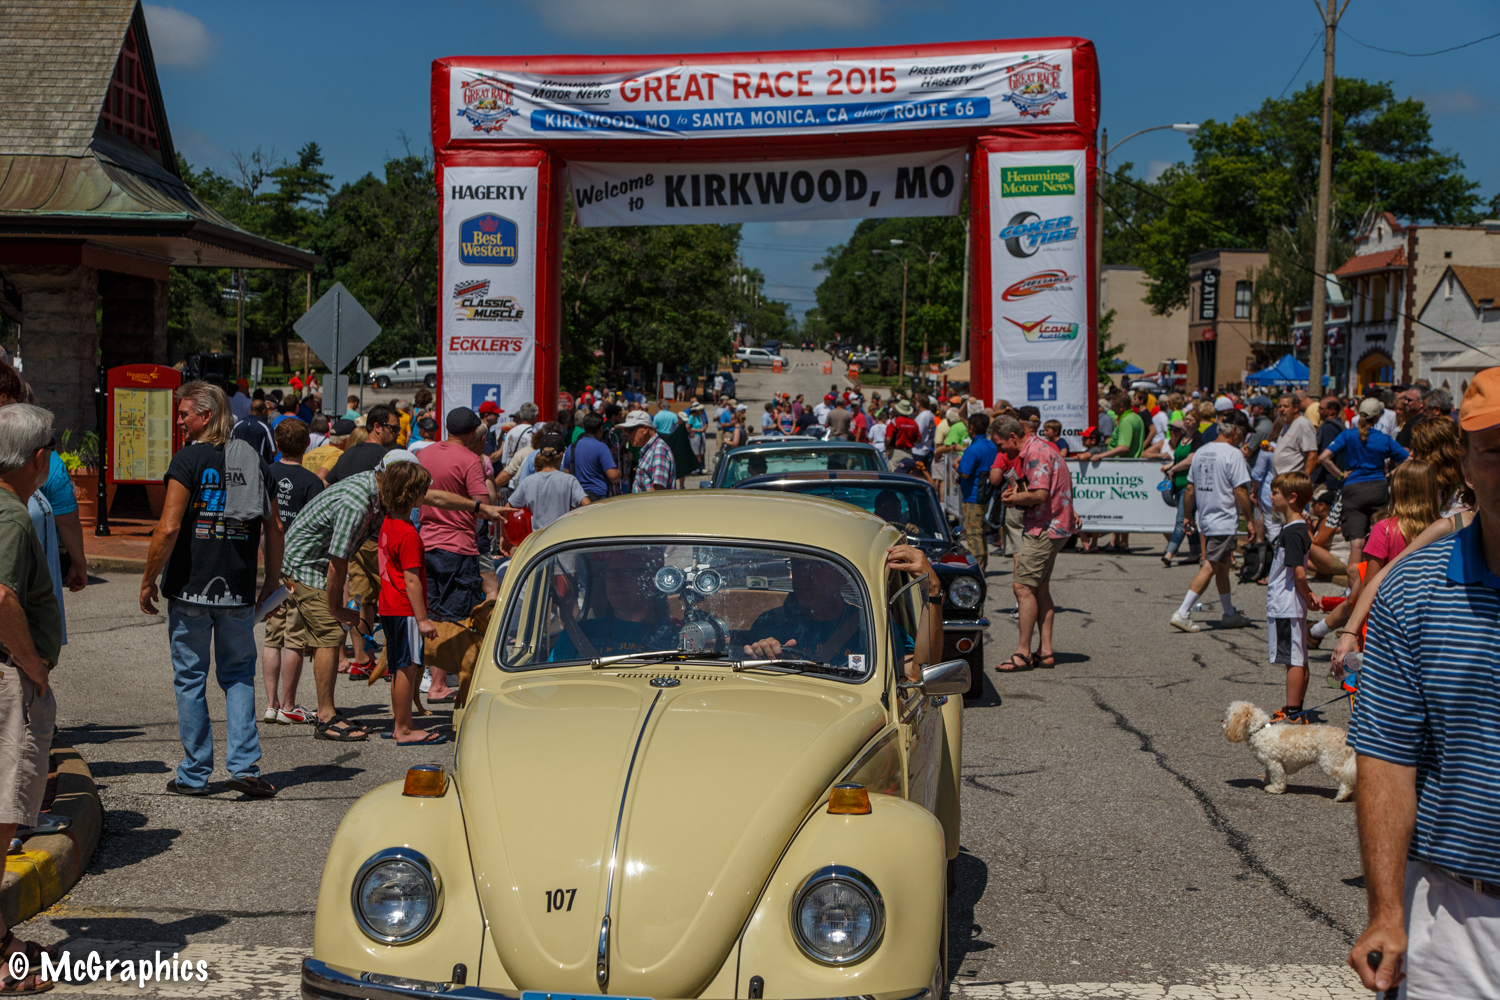 Great Race - Kirkwood, Mo